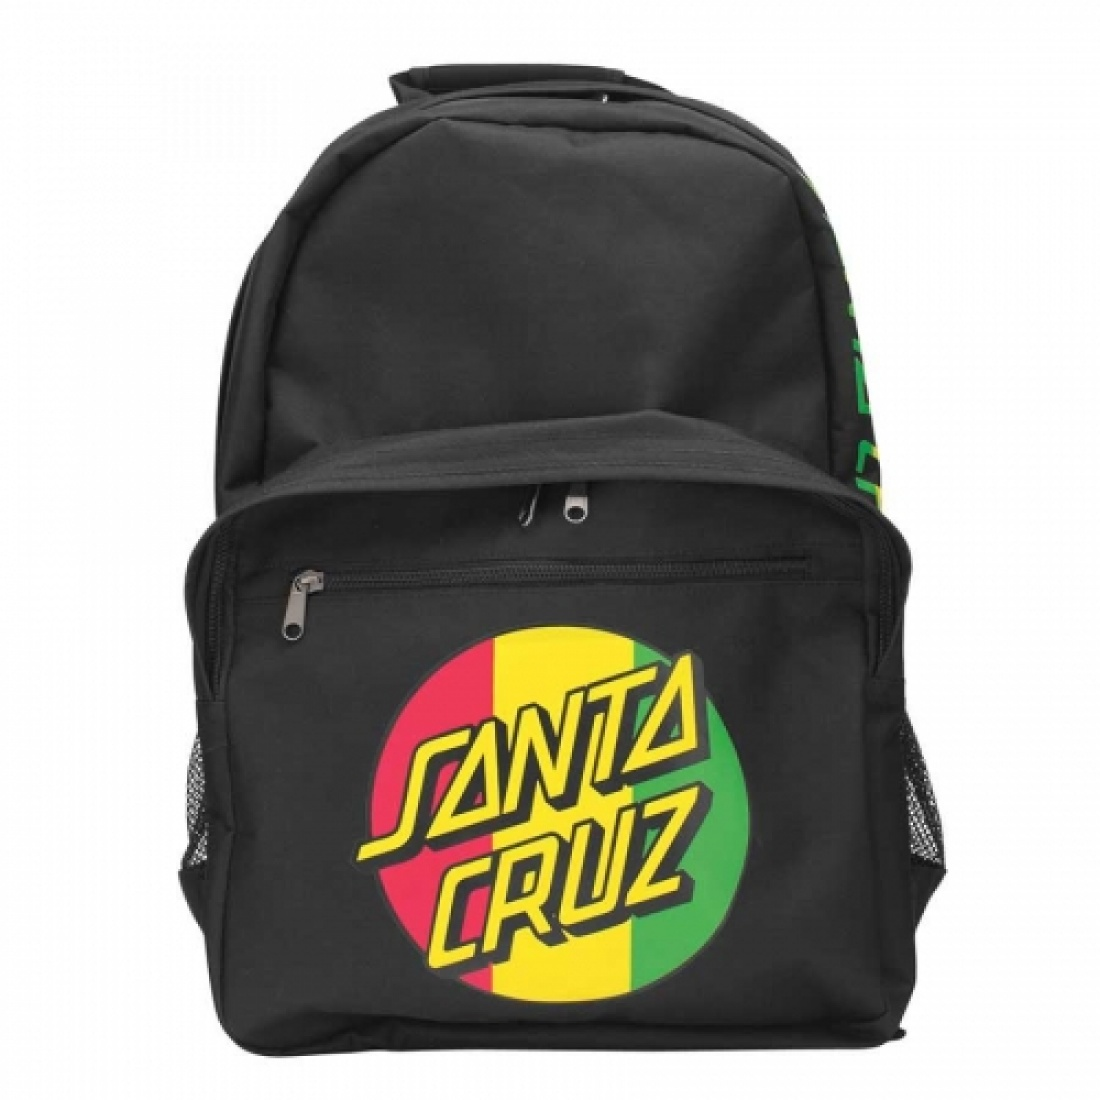 SCZ-Rasta Dot Backpack Black 12.75Wx17.5Hx7.5D Mens